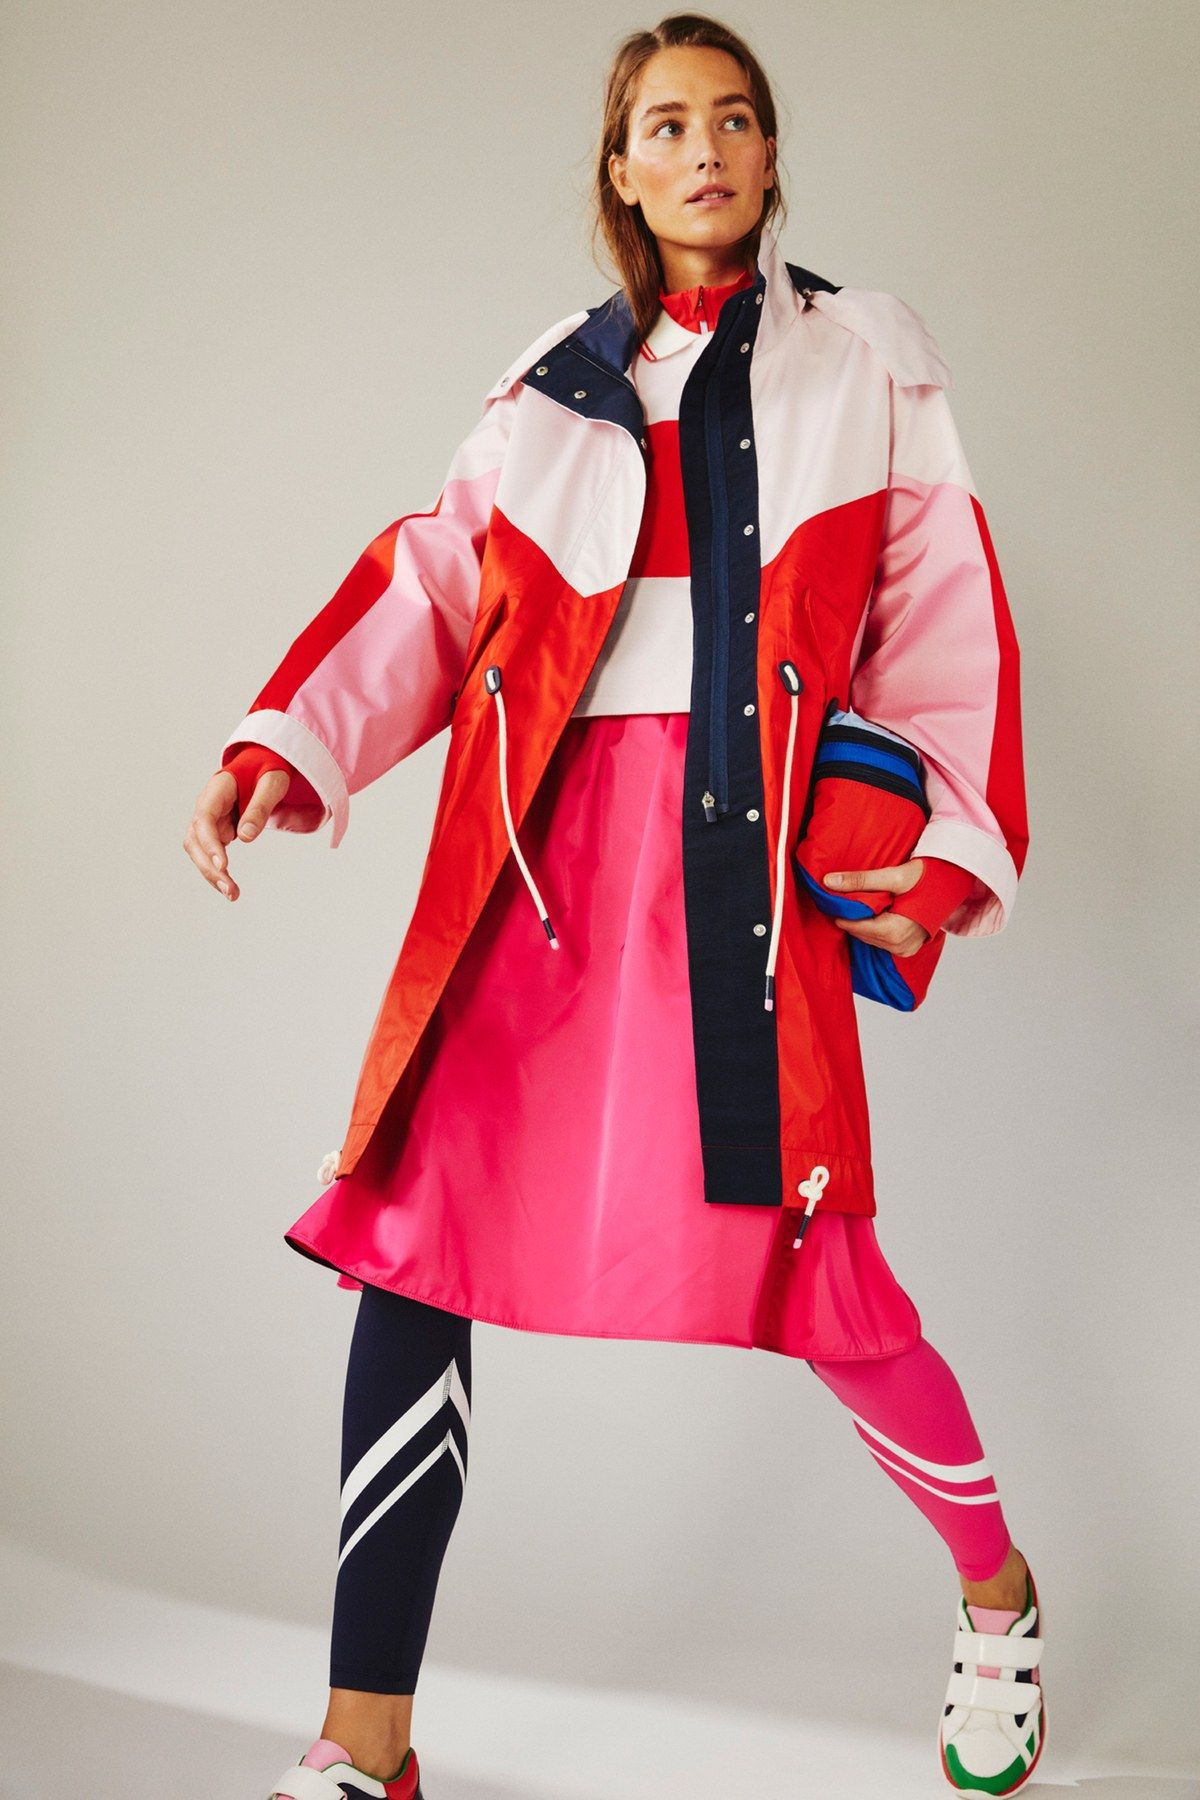 Tory Sport Spring 2019 Ready-to-Wear Fashion Show